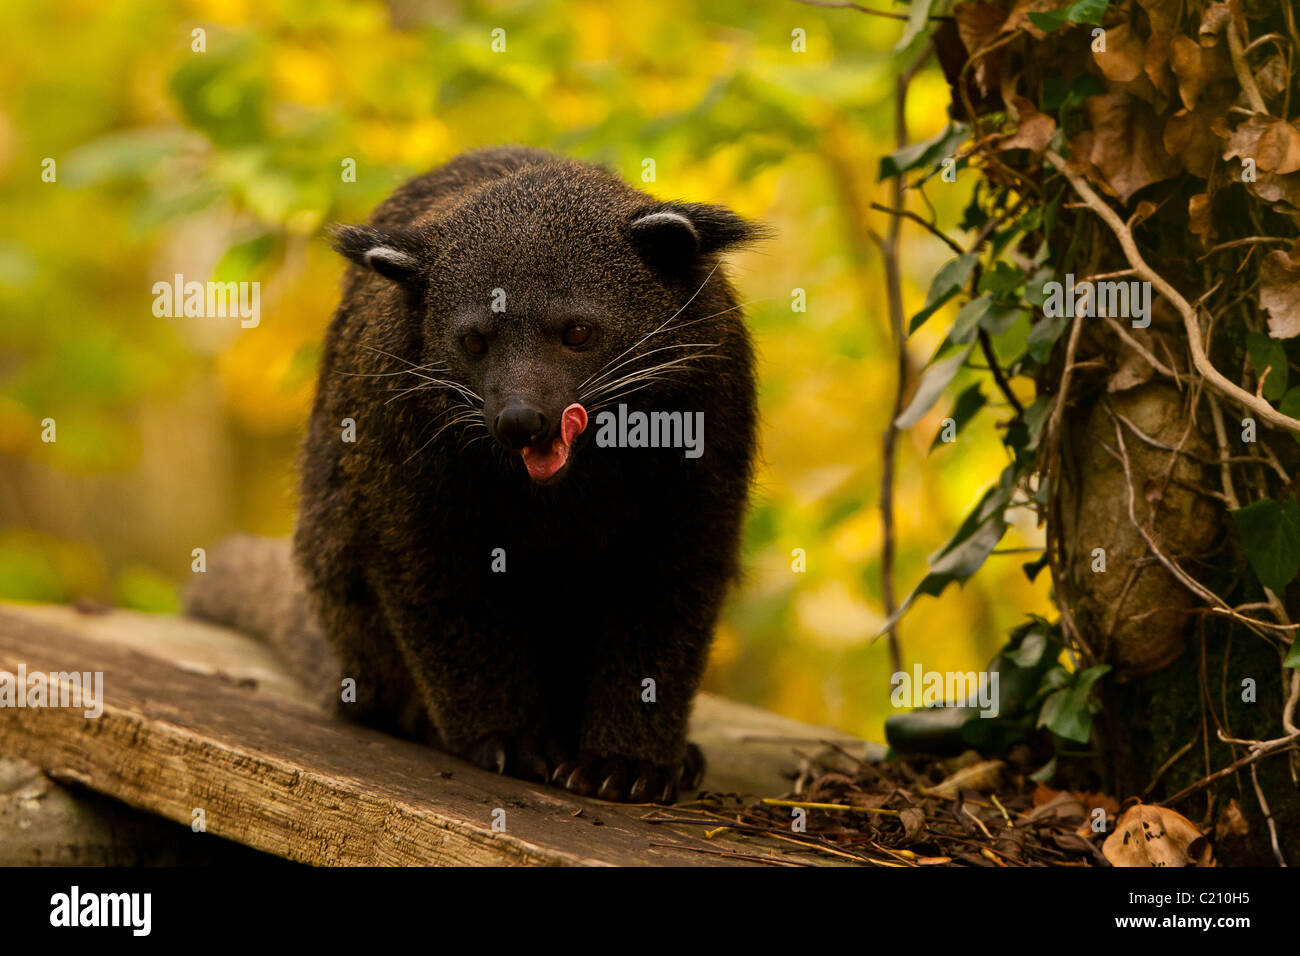 Binturong/Bear Cat (Arctictis binturong) Sitting near Tree - Stock Image